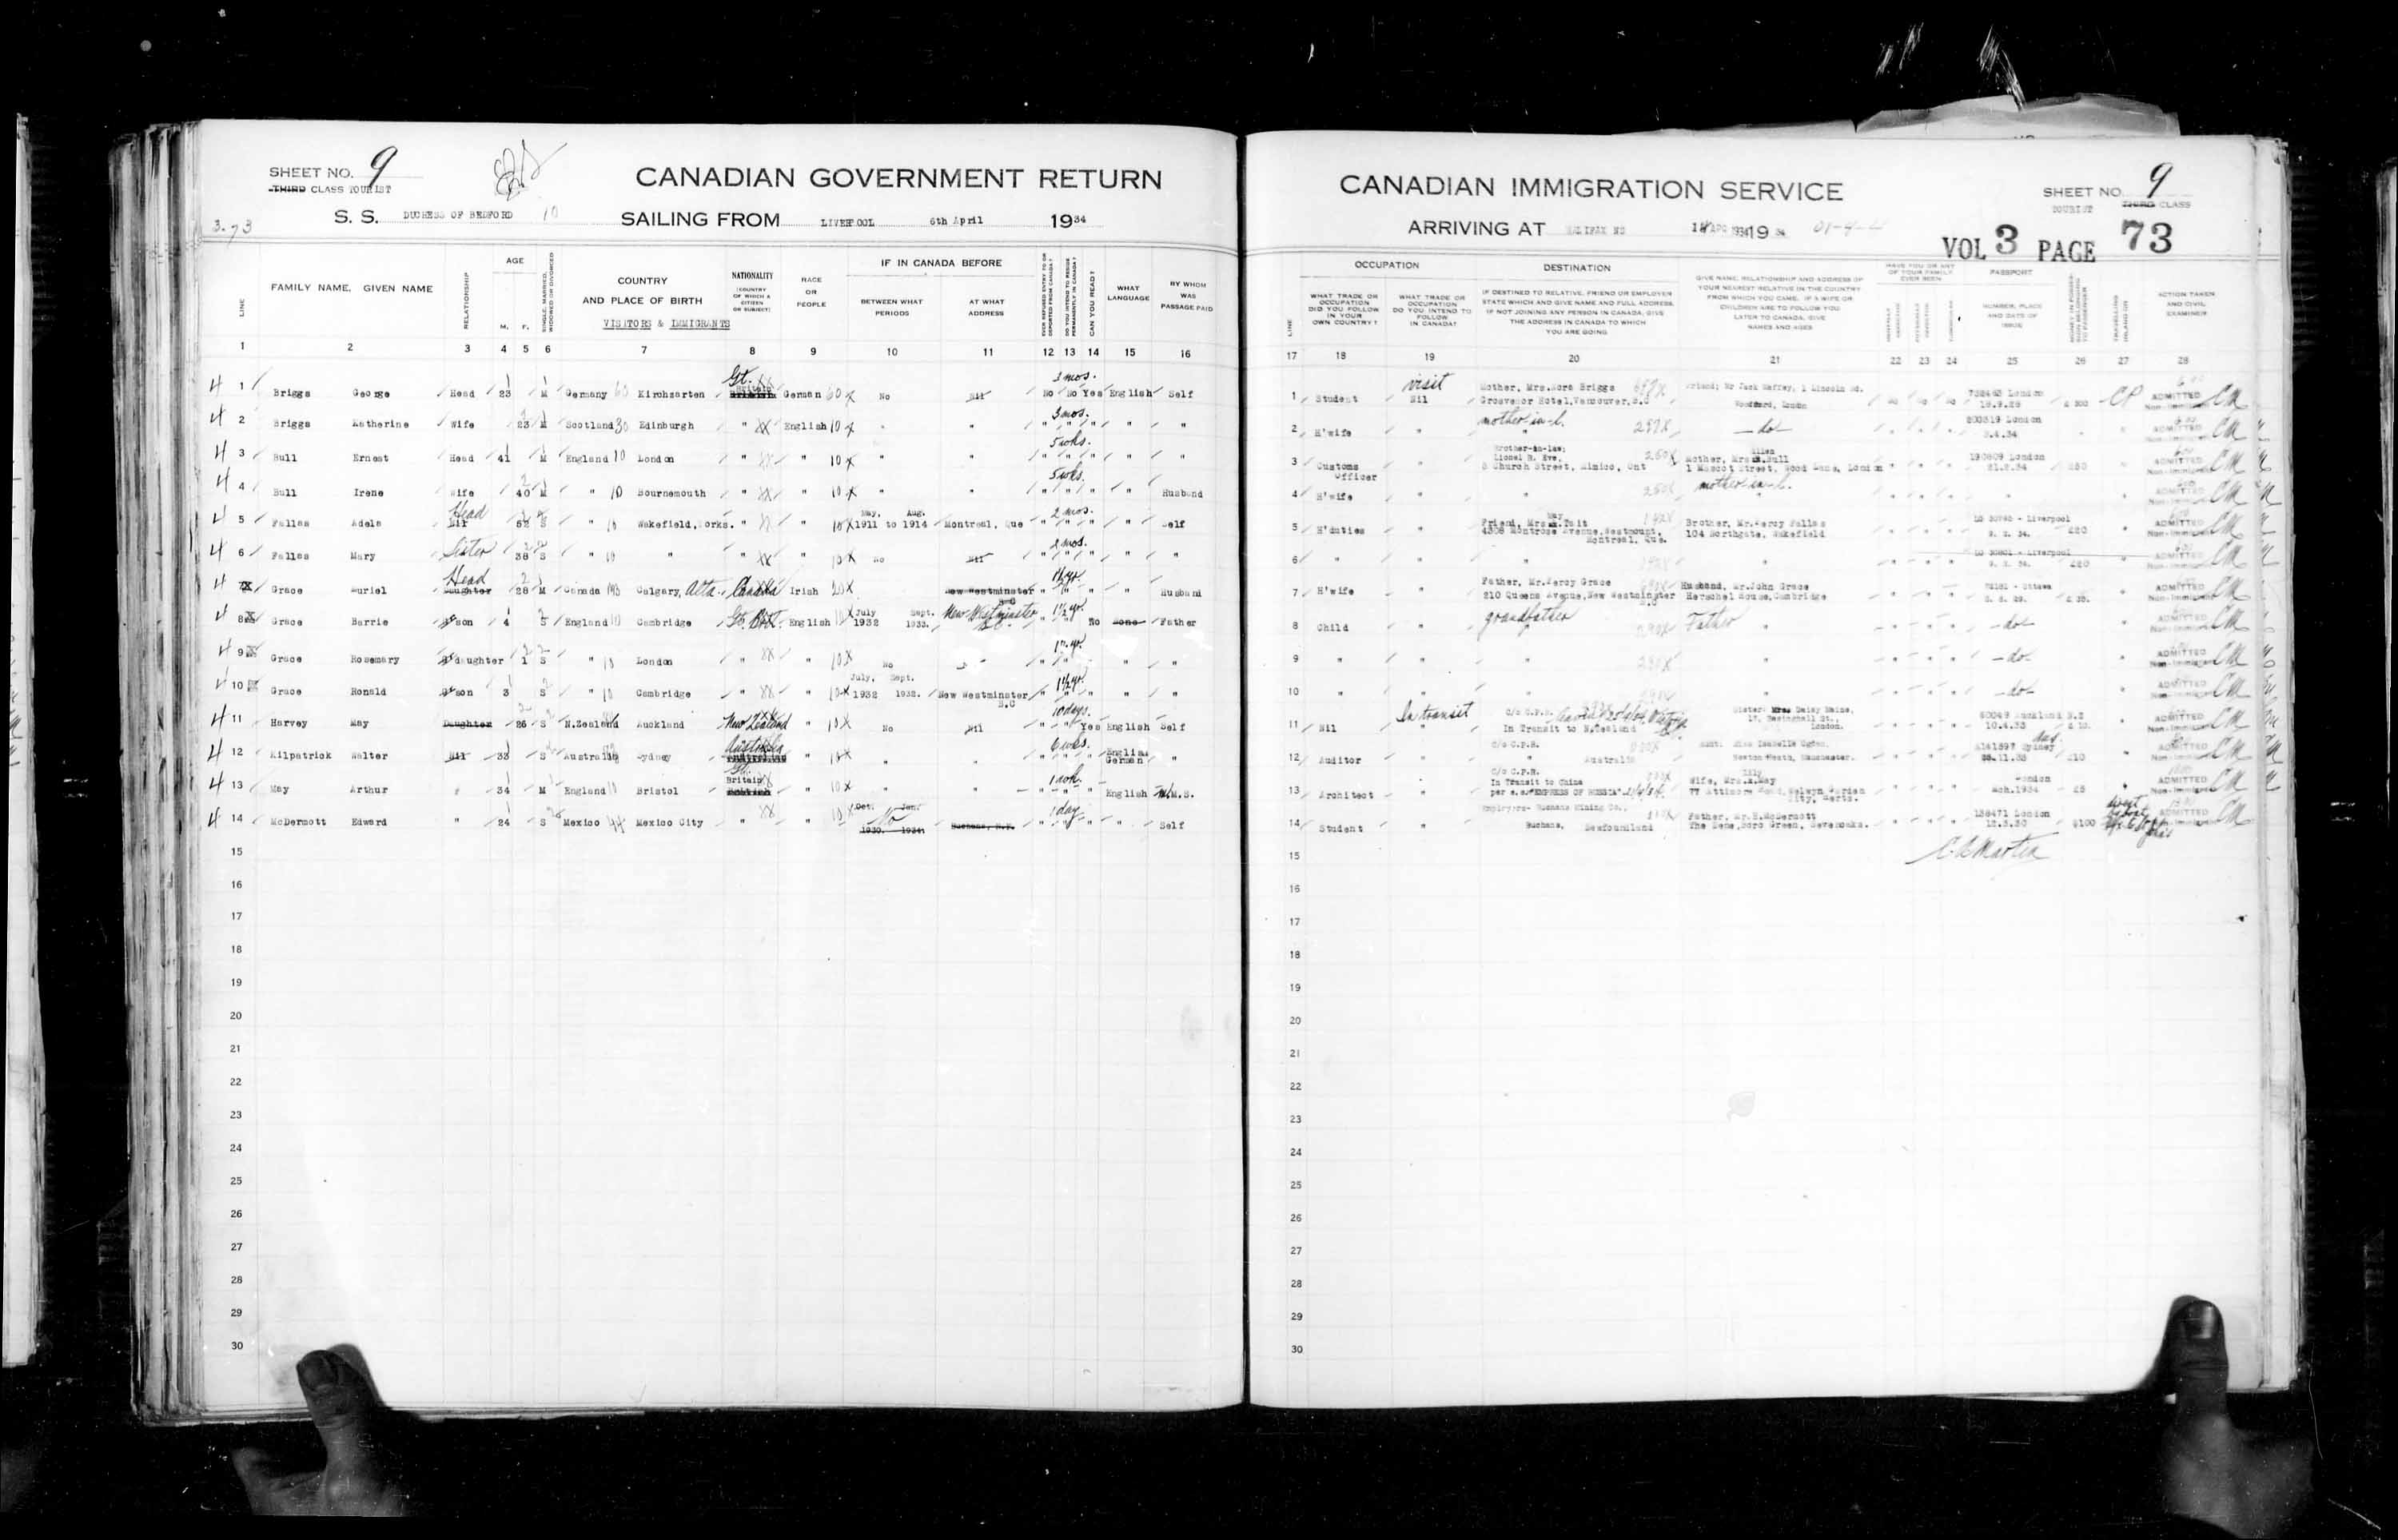 Title: Passenger Lists: Halifax (1925-1935) - Mikan Number: 134853 - Microform: t-14834